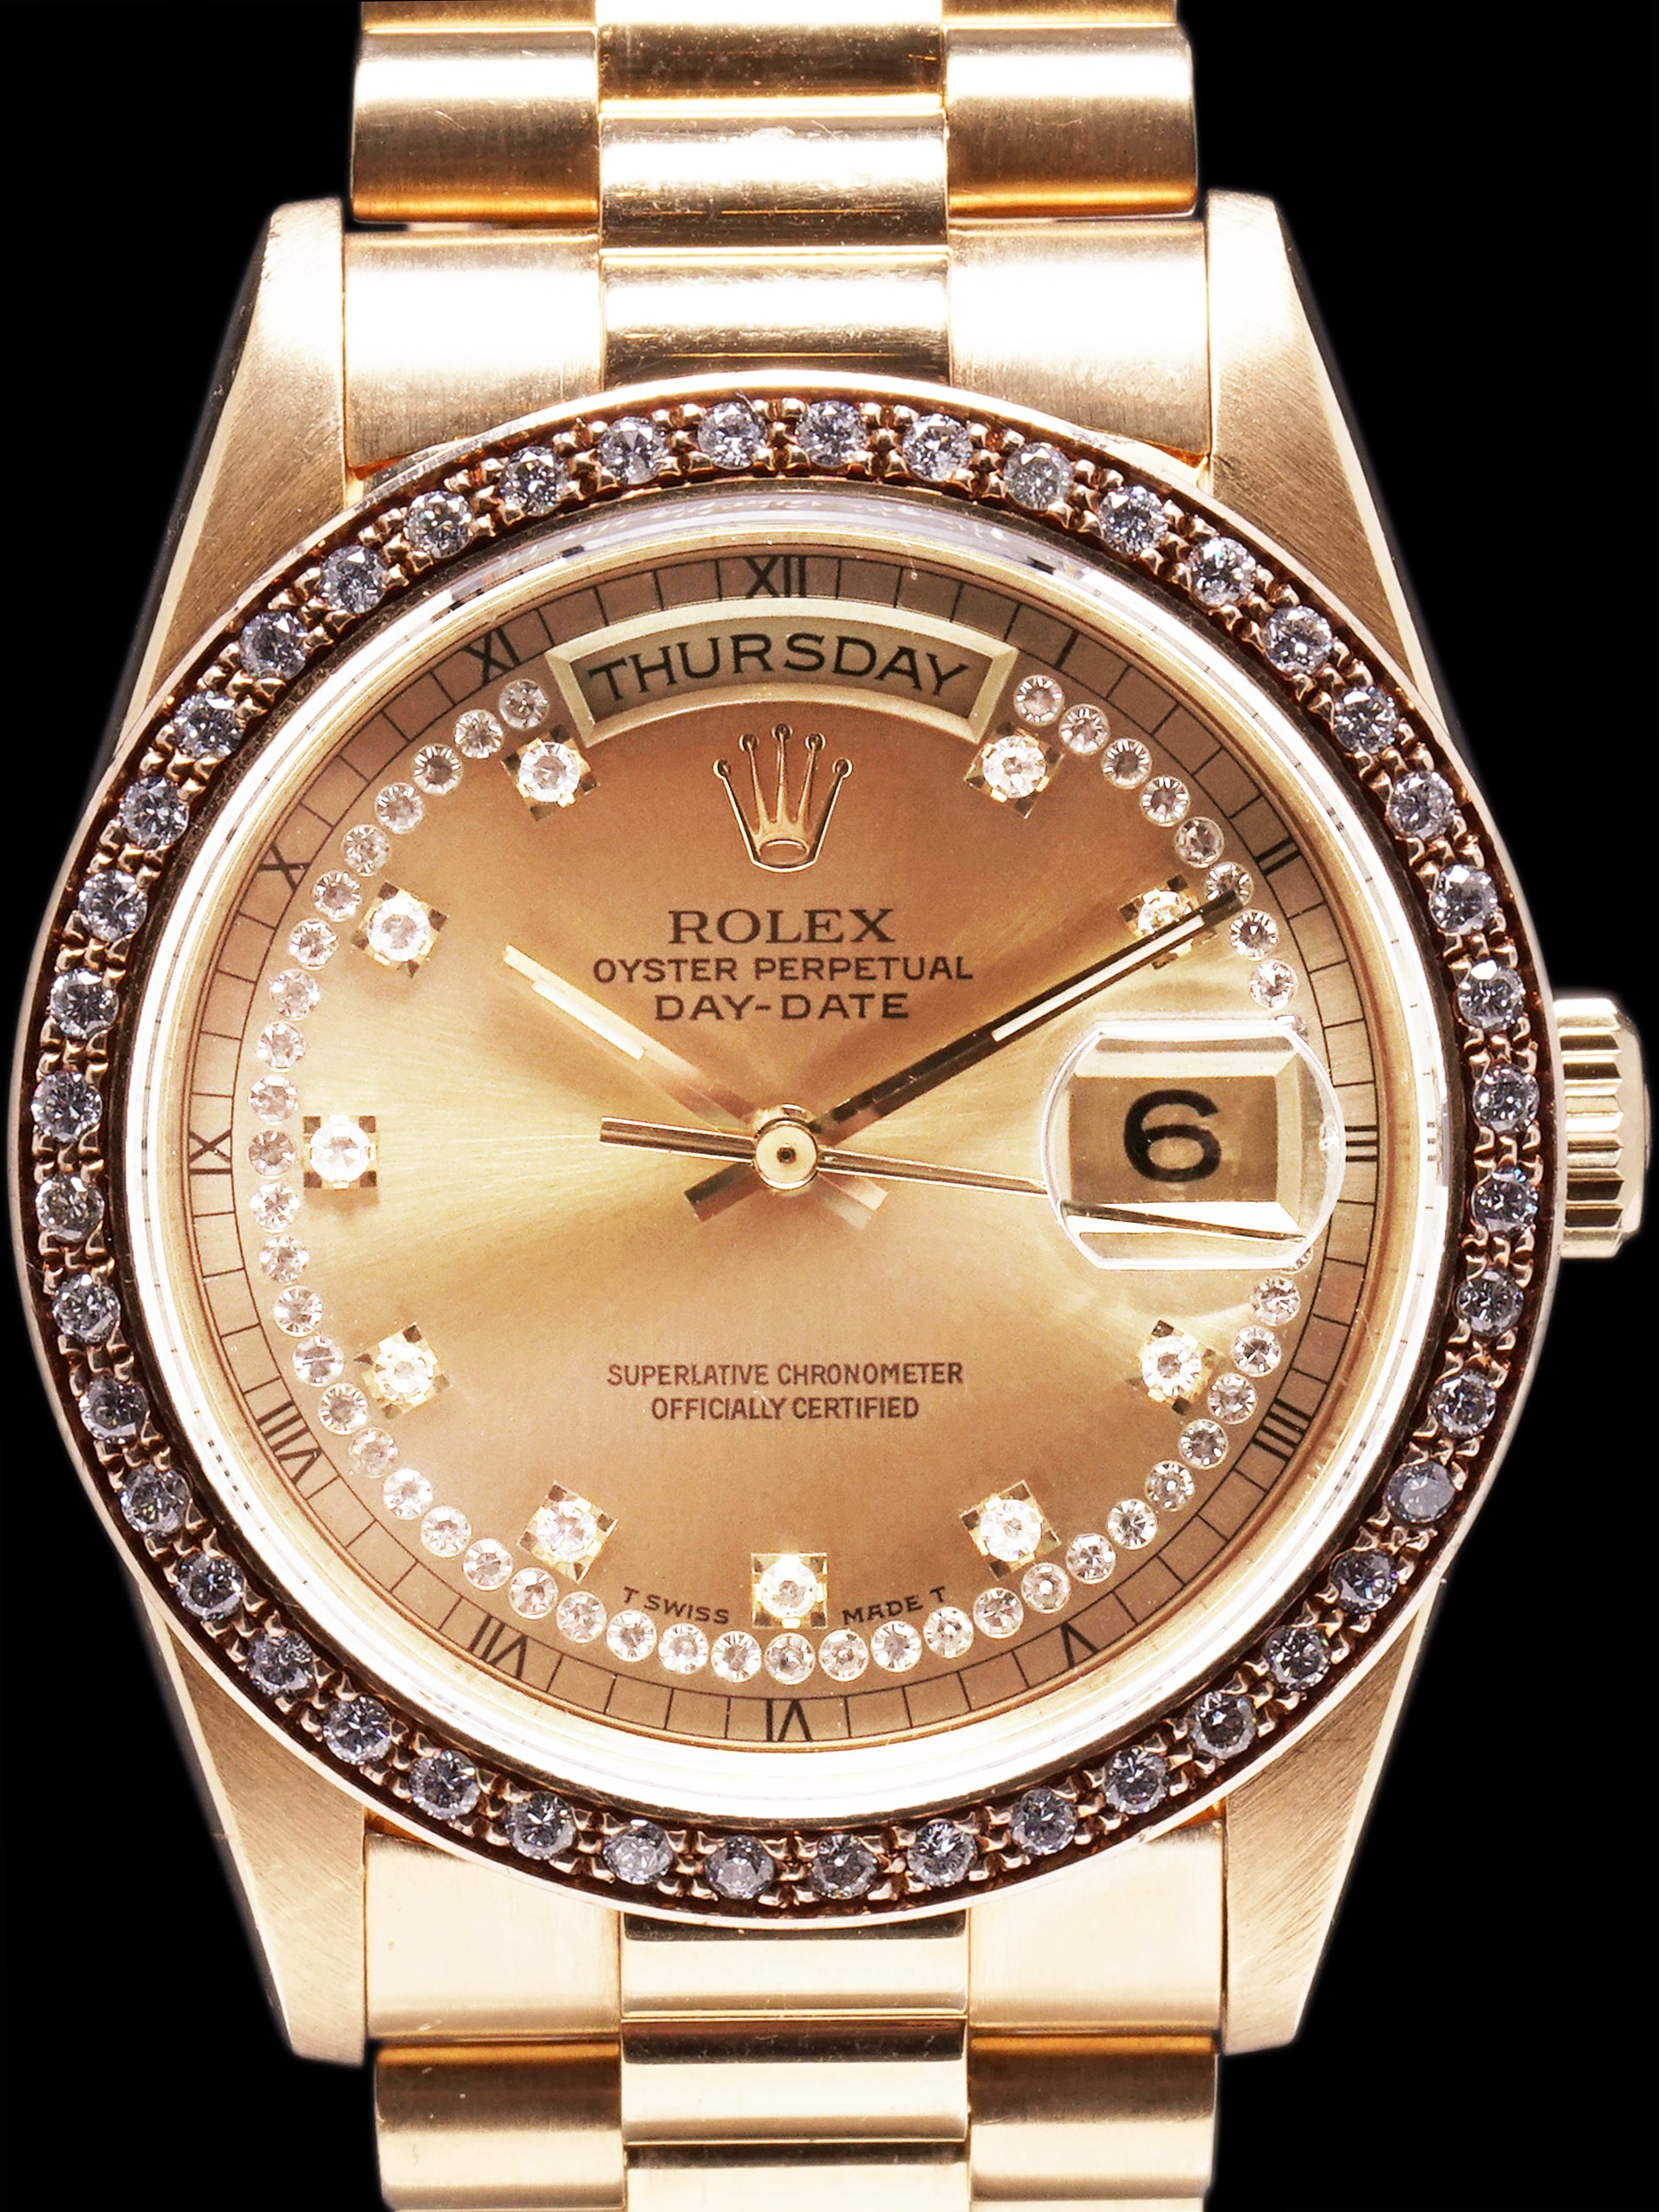 1989 Rolex Day-Date 18k YG (Ref. 18348) String Dial W/ Factory Diamond Bezel W/ Box & Papers